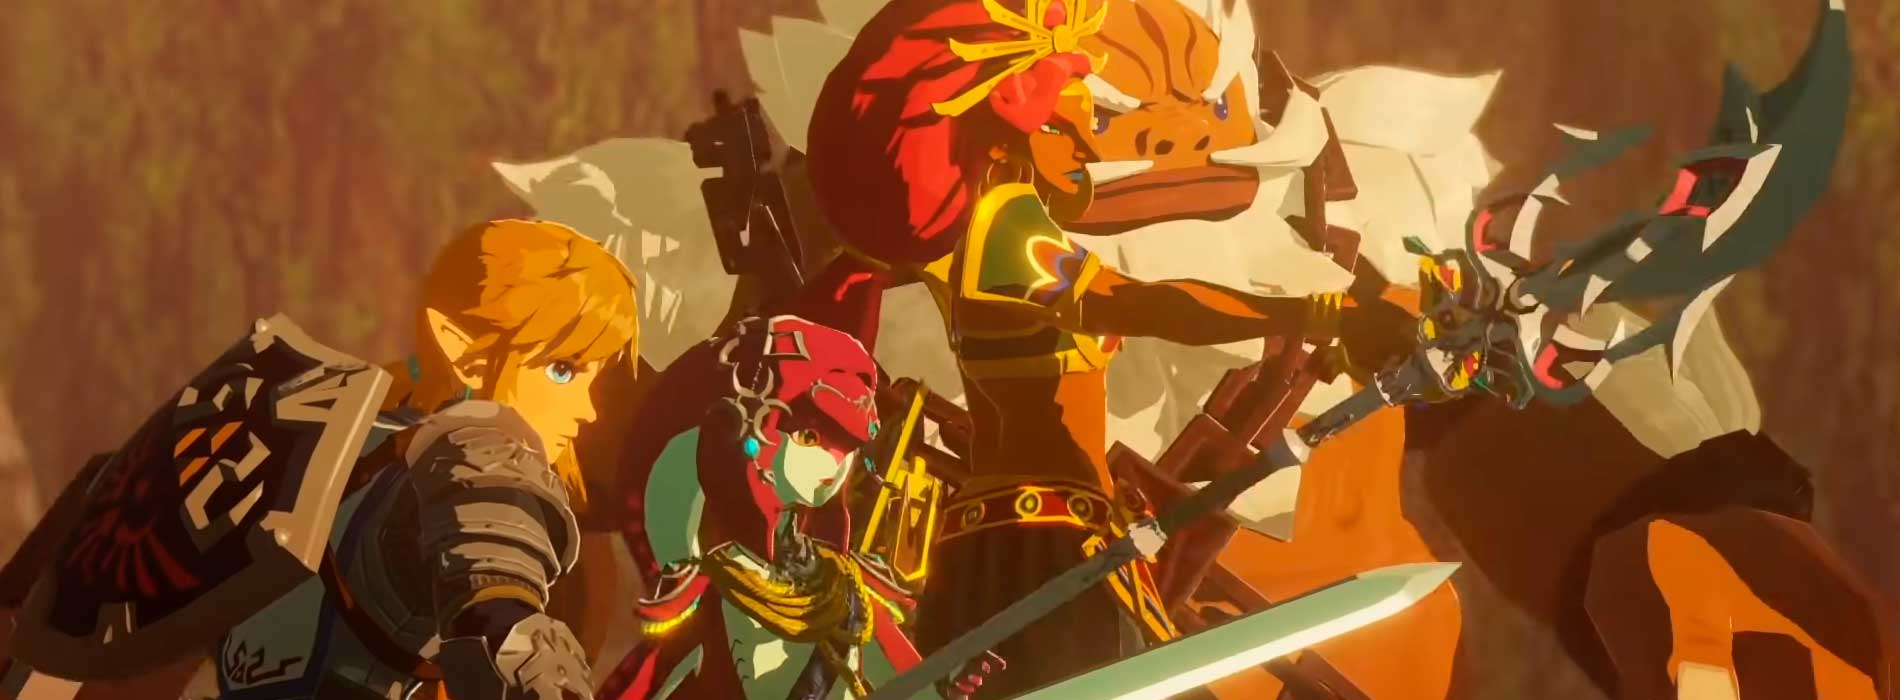 ANÁLISE - Hyrule Warriors: Age of Calamity é o complemento perfeito para Breath of the Wild